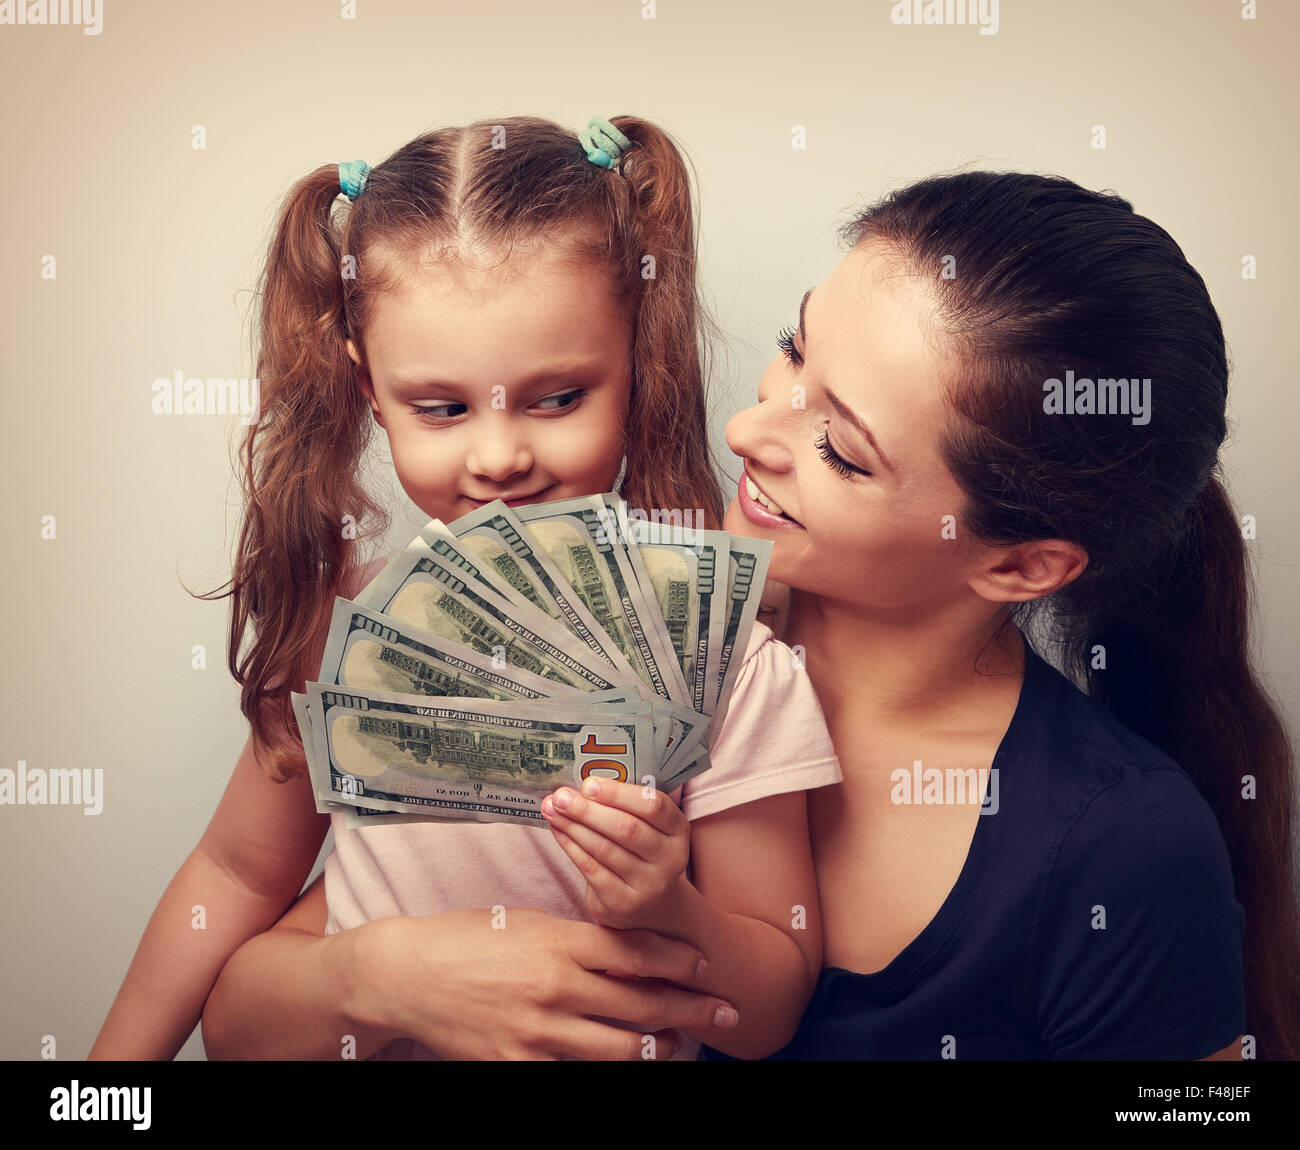 Happy casual family holding dollars and thinking how to spend the money. Vintage portrait Stock Photo